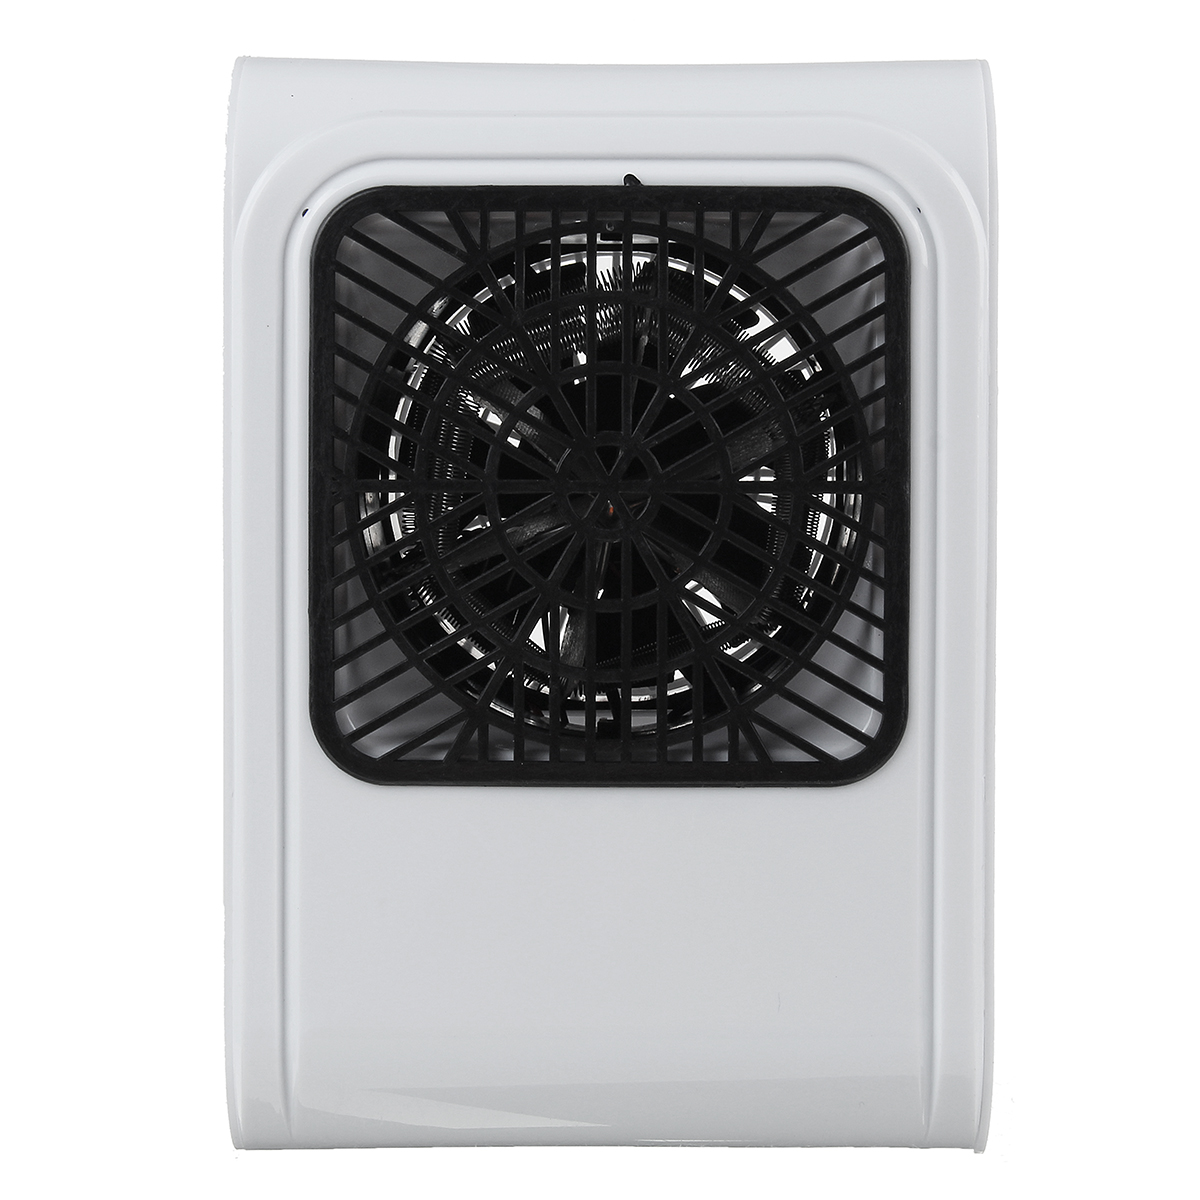 110V 500W Mini Electric Space Heater 2S Quick Heating Portable Electric Heater Fan for Office Home Winter Warmer